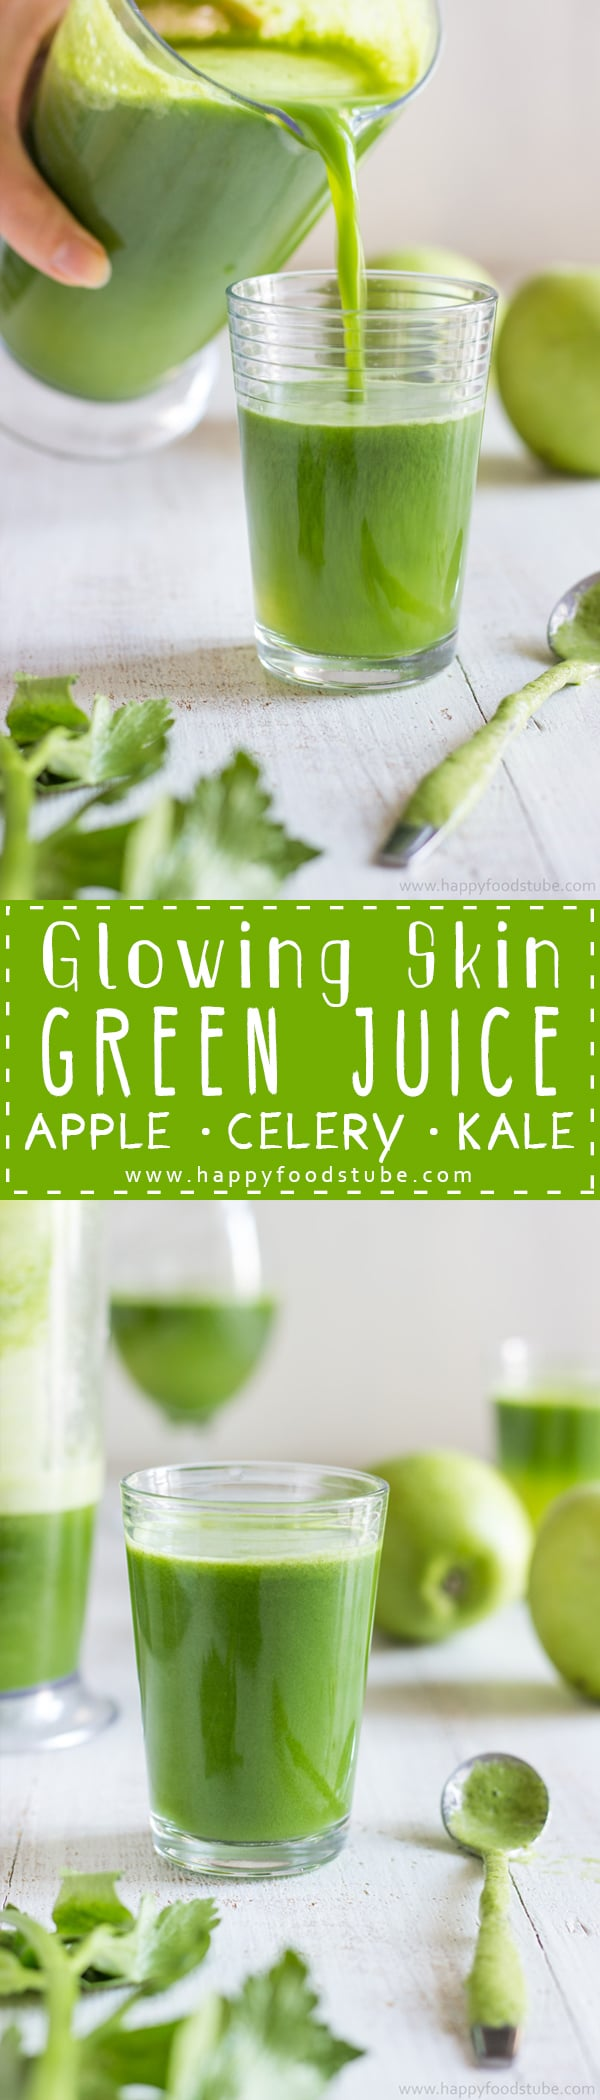 This Green Juice recipe is an easy way to give your skin the glow you are after. No preservatives, only 3 ingredients and 5 minutes to make. Homemade juicing recipe